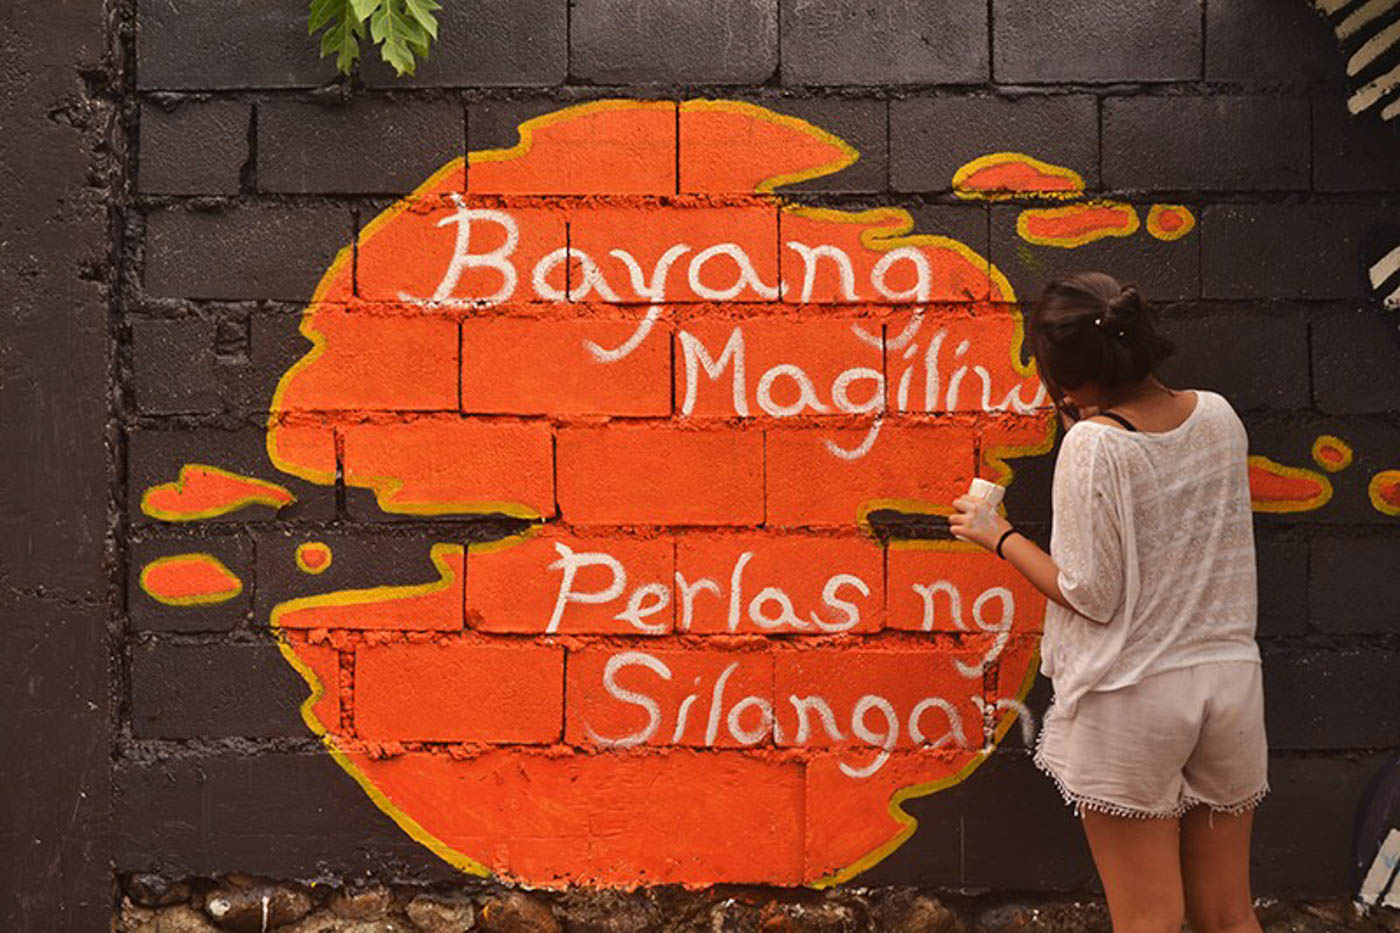 u2018KULAY NG KALAYAAN.u2019 Artists creates a mural depicting freedom and human rights. Photo by Charlon Kim